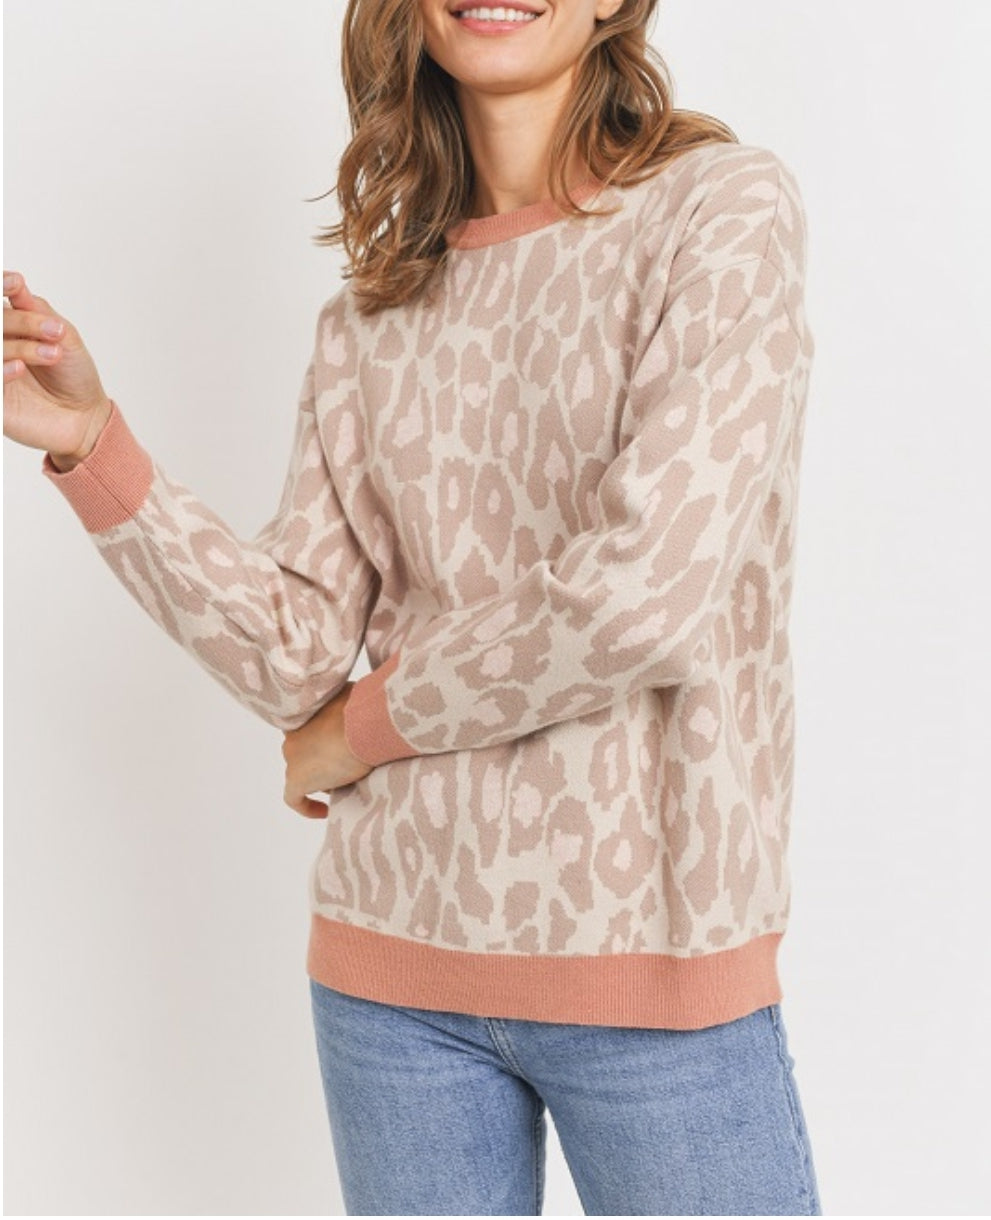 Wild Nights Cheetah Sweater